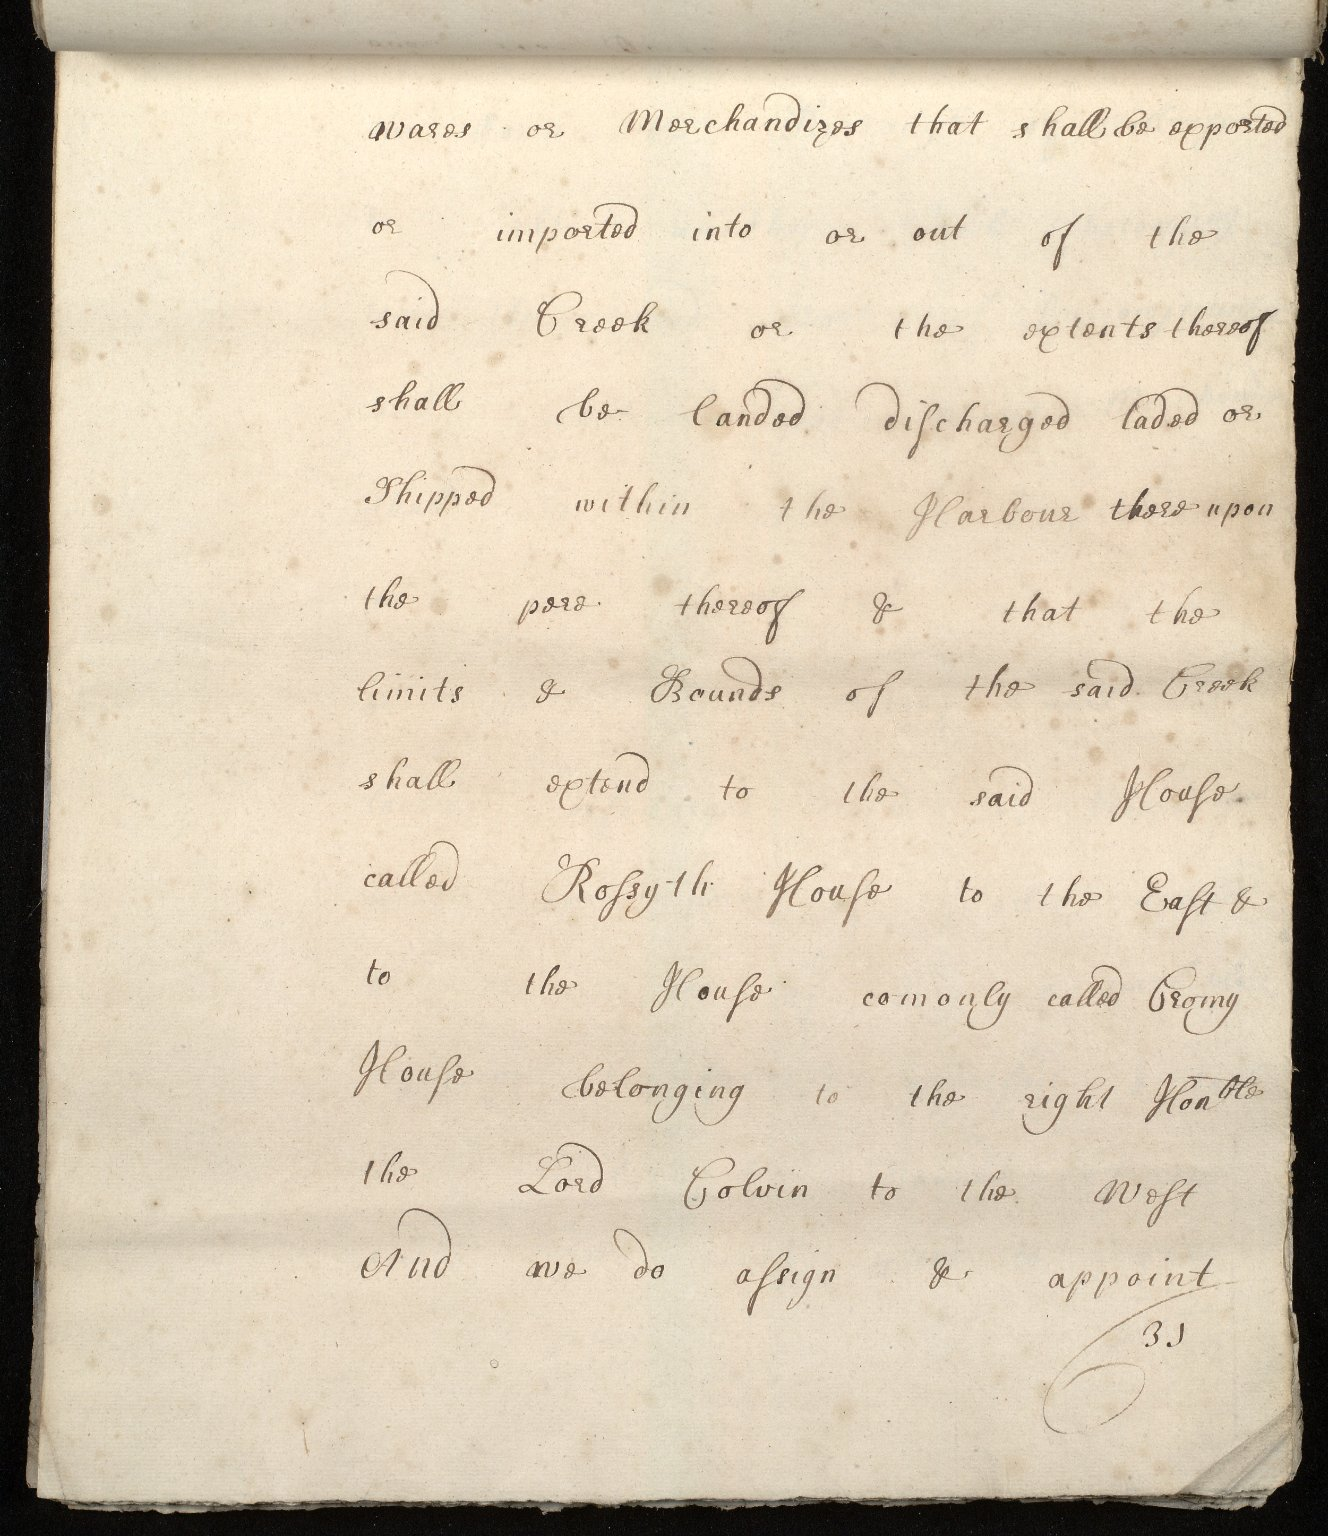 [Commission by Queen Anne to John Adair and others to appoint the town of Borrowstounness (Bo'ness) to be a port and to fix the bounds thereof] [31 of 39]